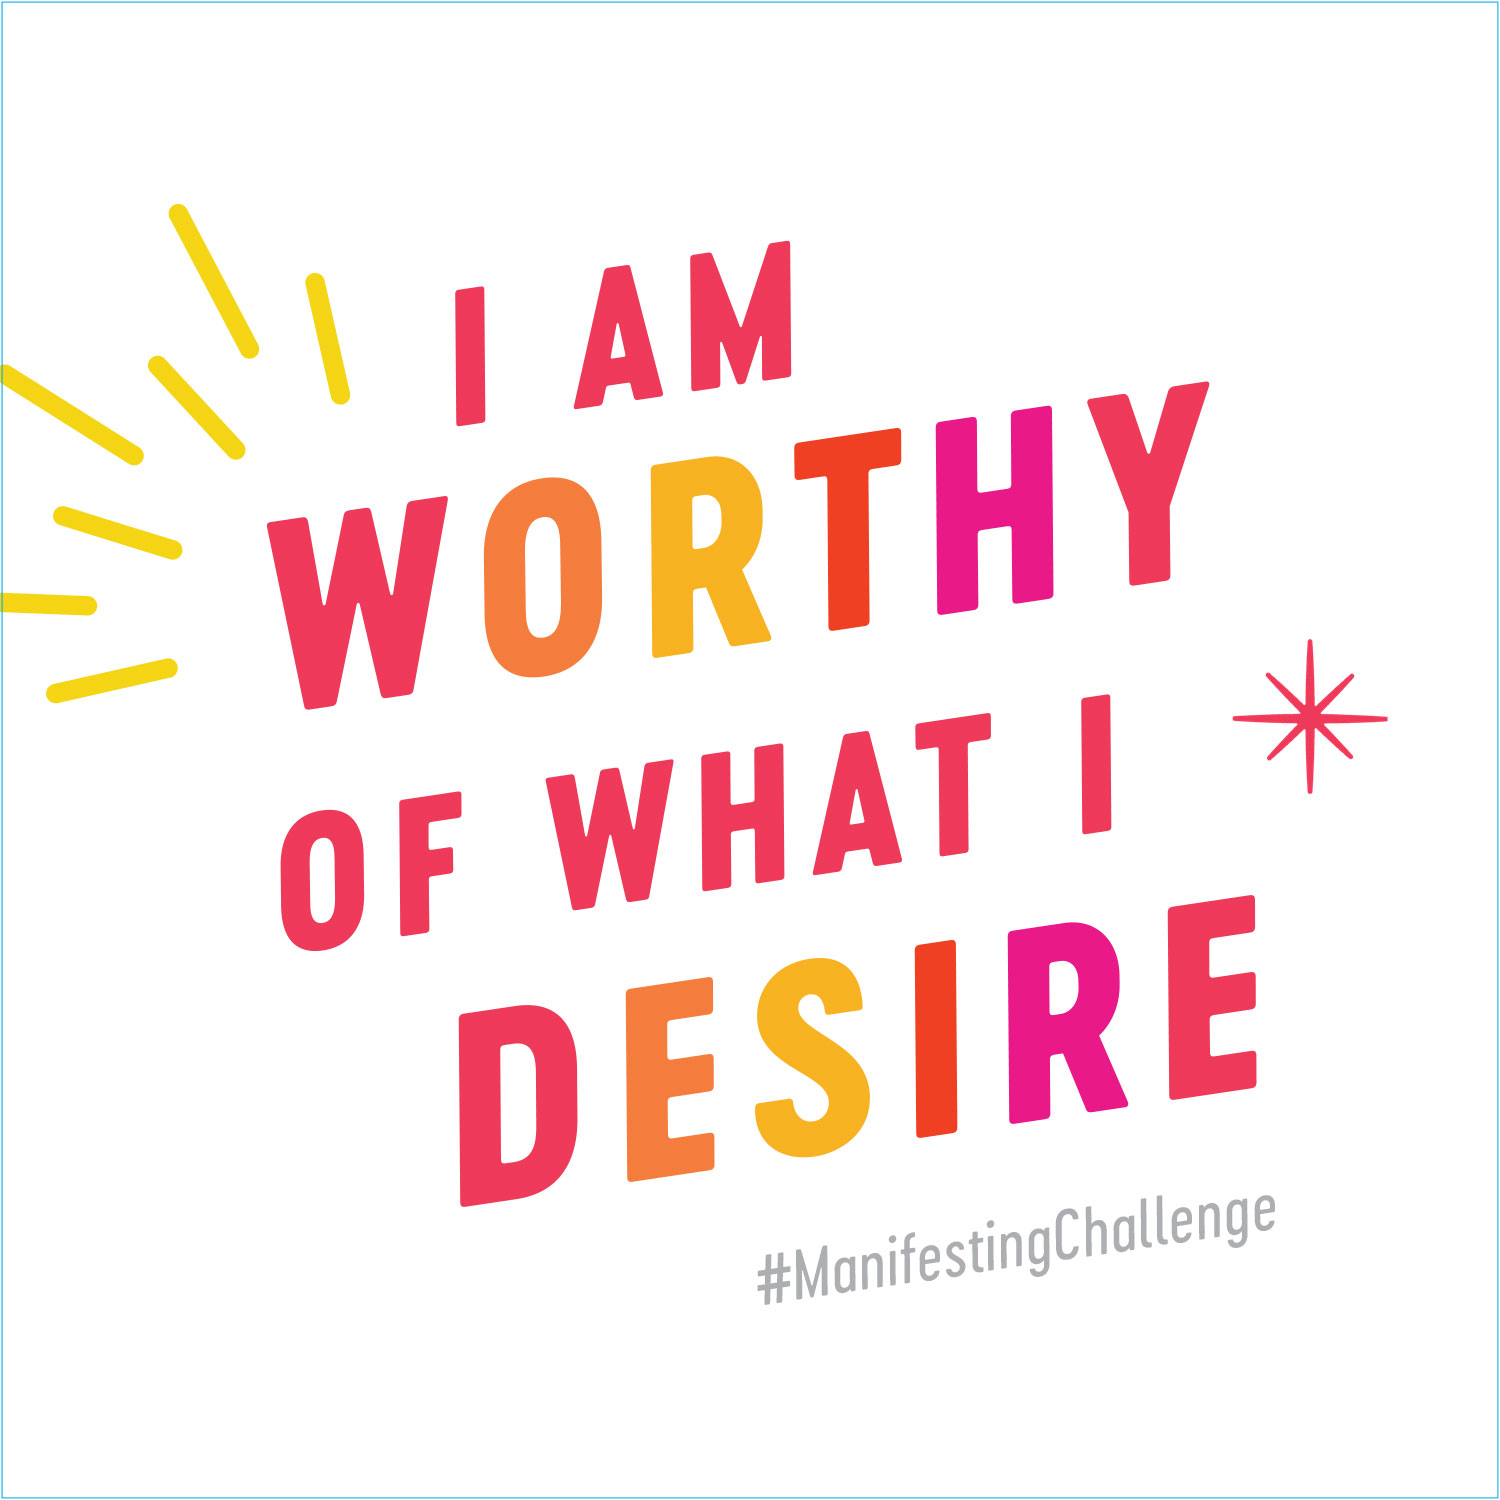 I am worthy of what I desire | Manifesting Challenge by Gabby Bernstein